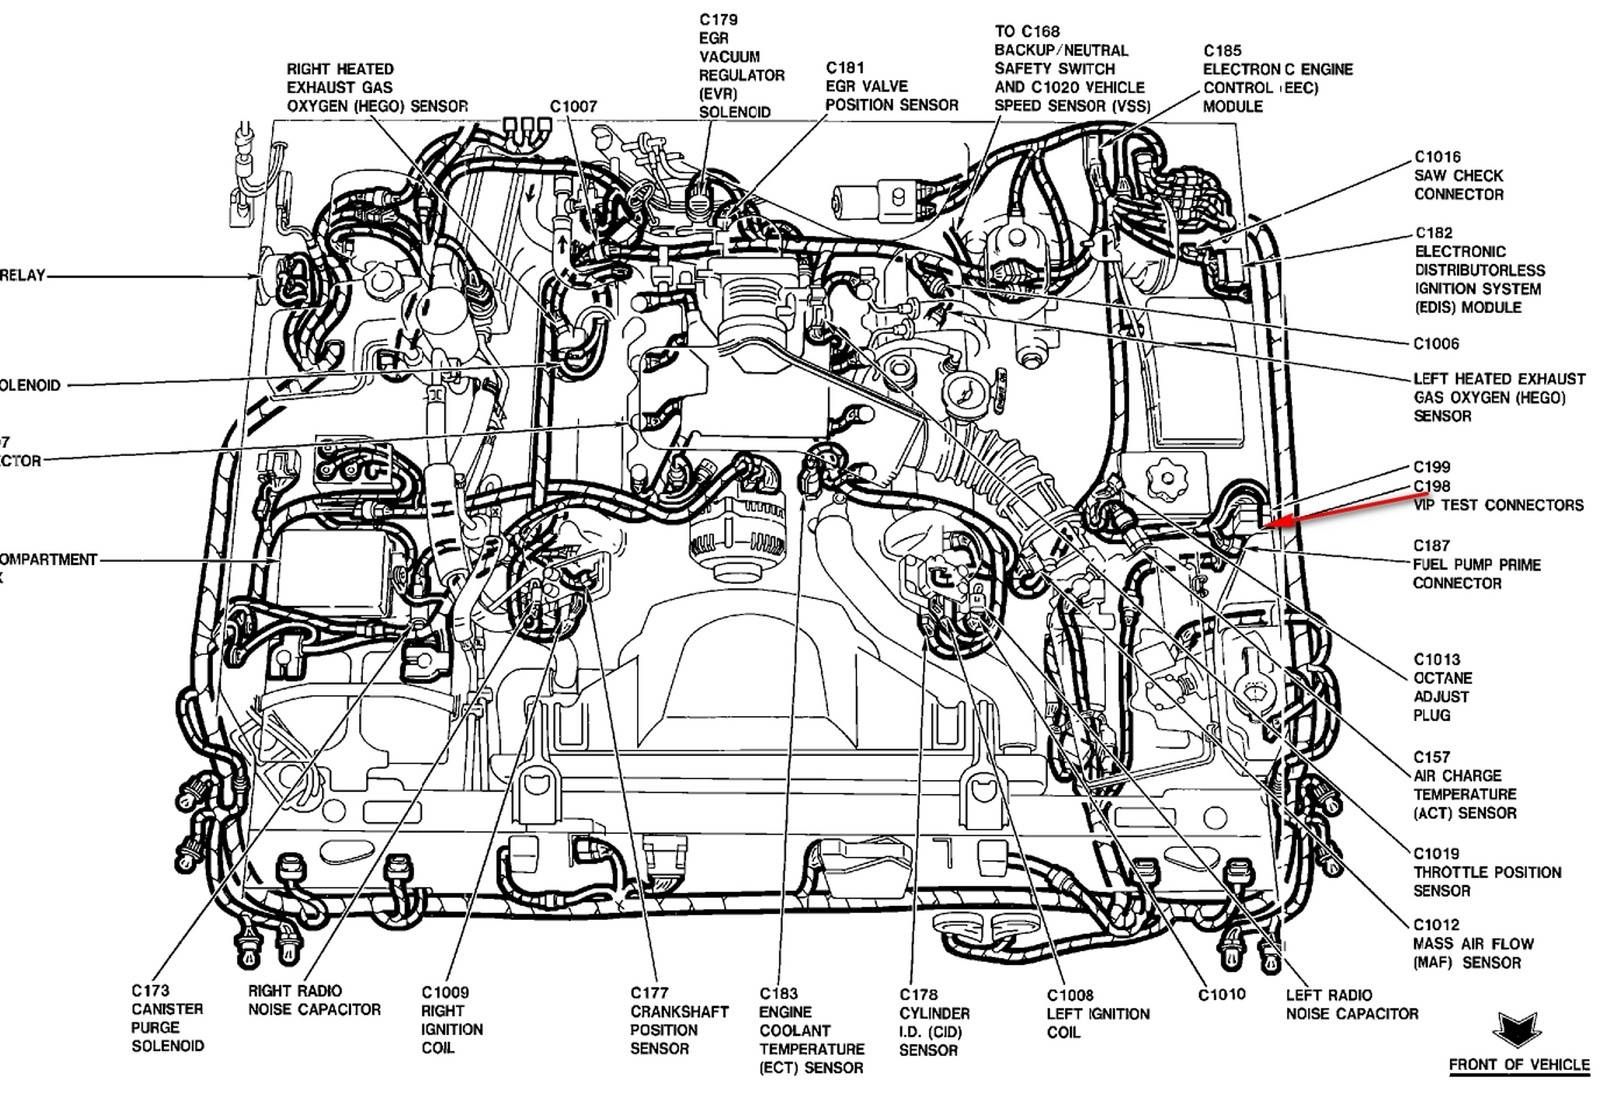 Discussion T29372 ds554767 on bmw engine coolant temperature sensor location